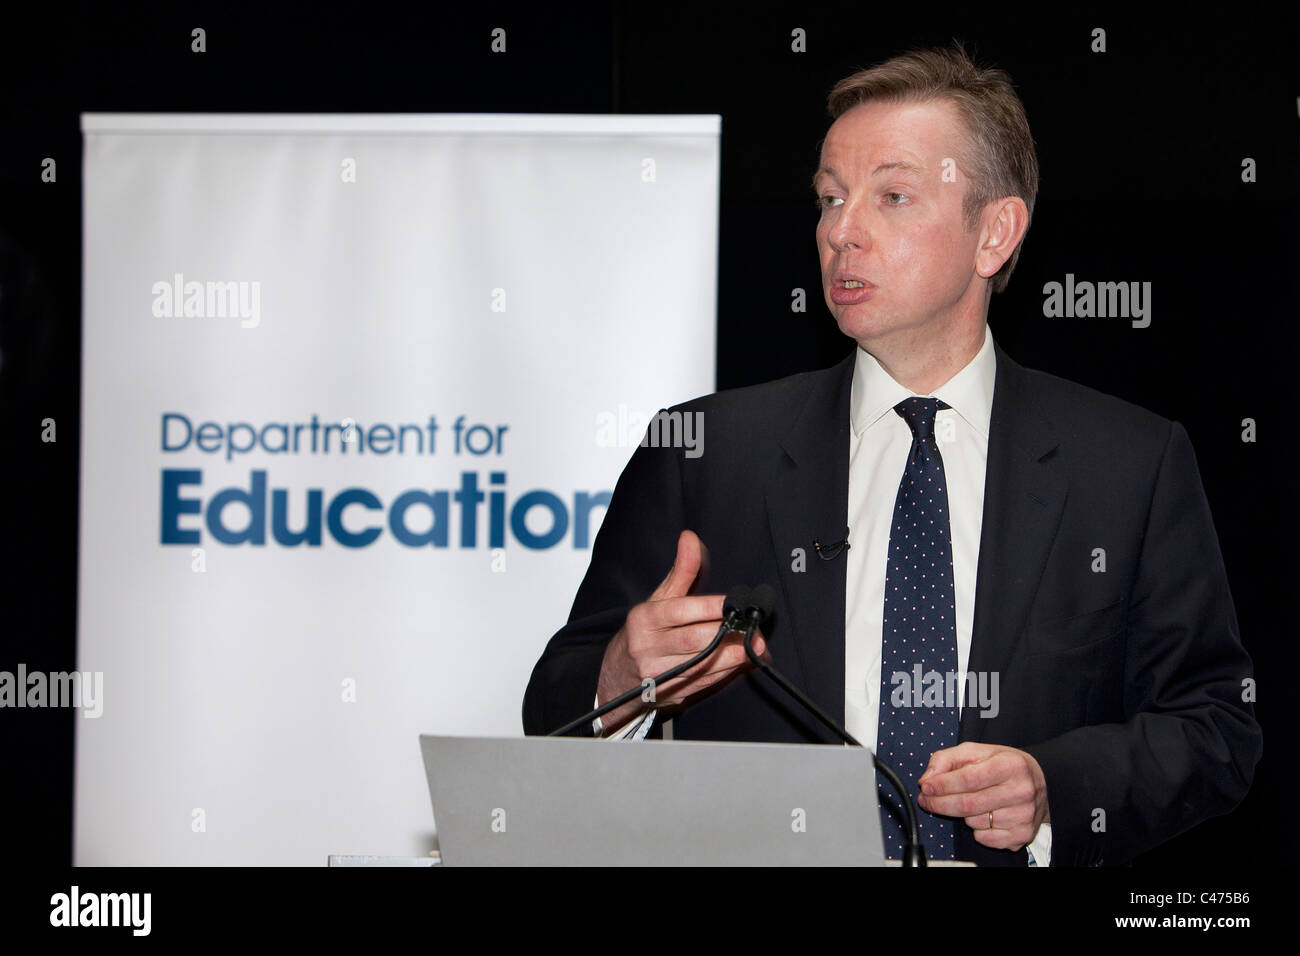 Conservative MP Michael Gove Member of Parliament for Surrey Heath and Secretary of State for Education - Stock Image